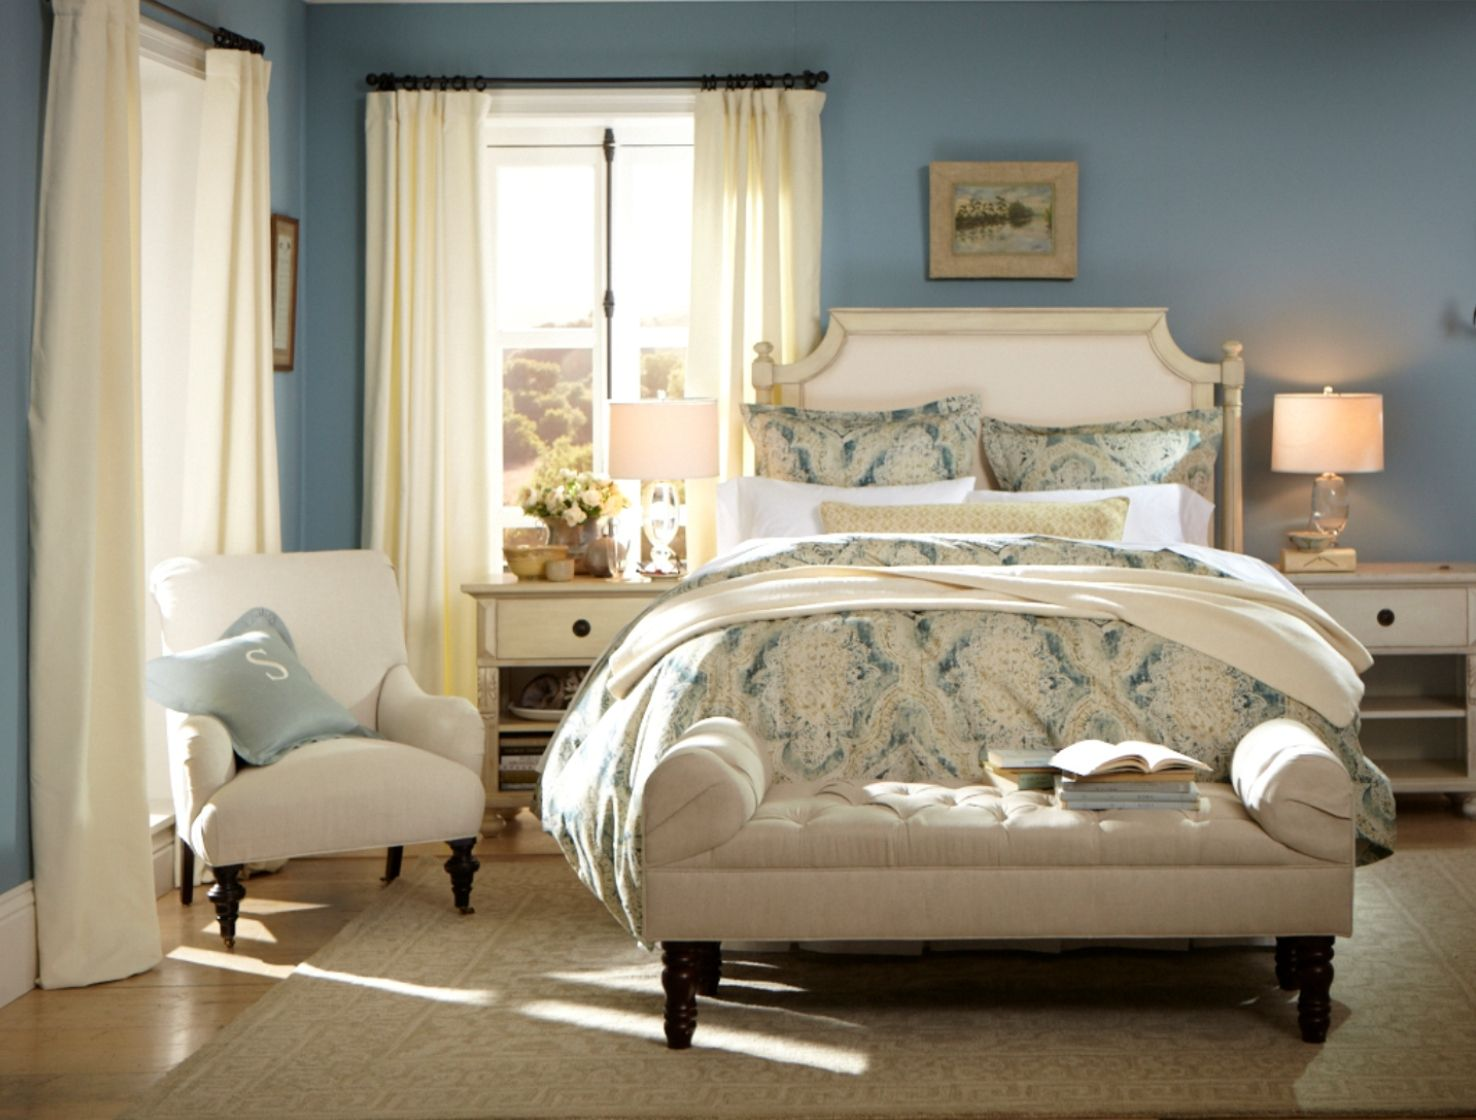 bedroom featuring paint color smokey blue sw 7604 from 14360 | 280a20025cbb1387f1cad2d837a1213e